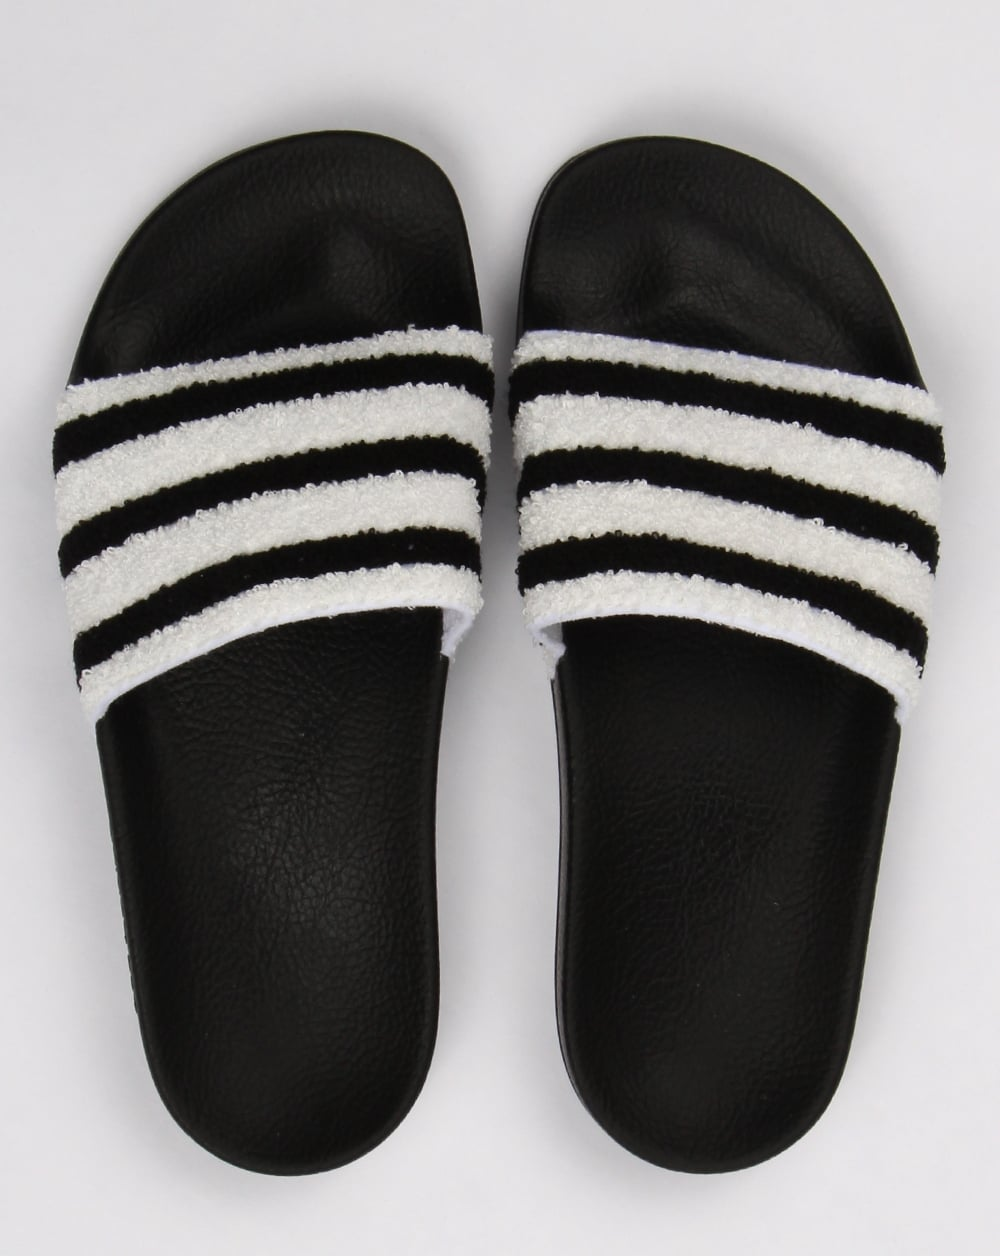 ce5e87298a2 Adidas Adilette Sliders Black White